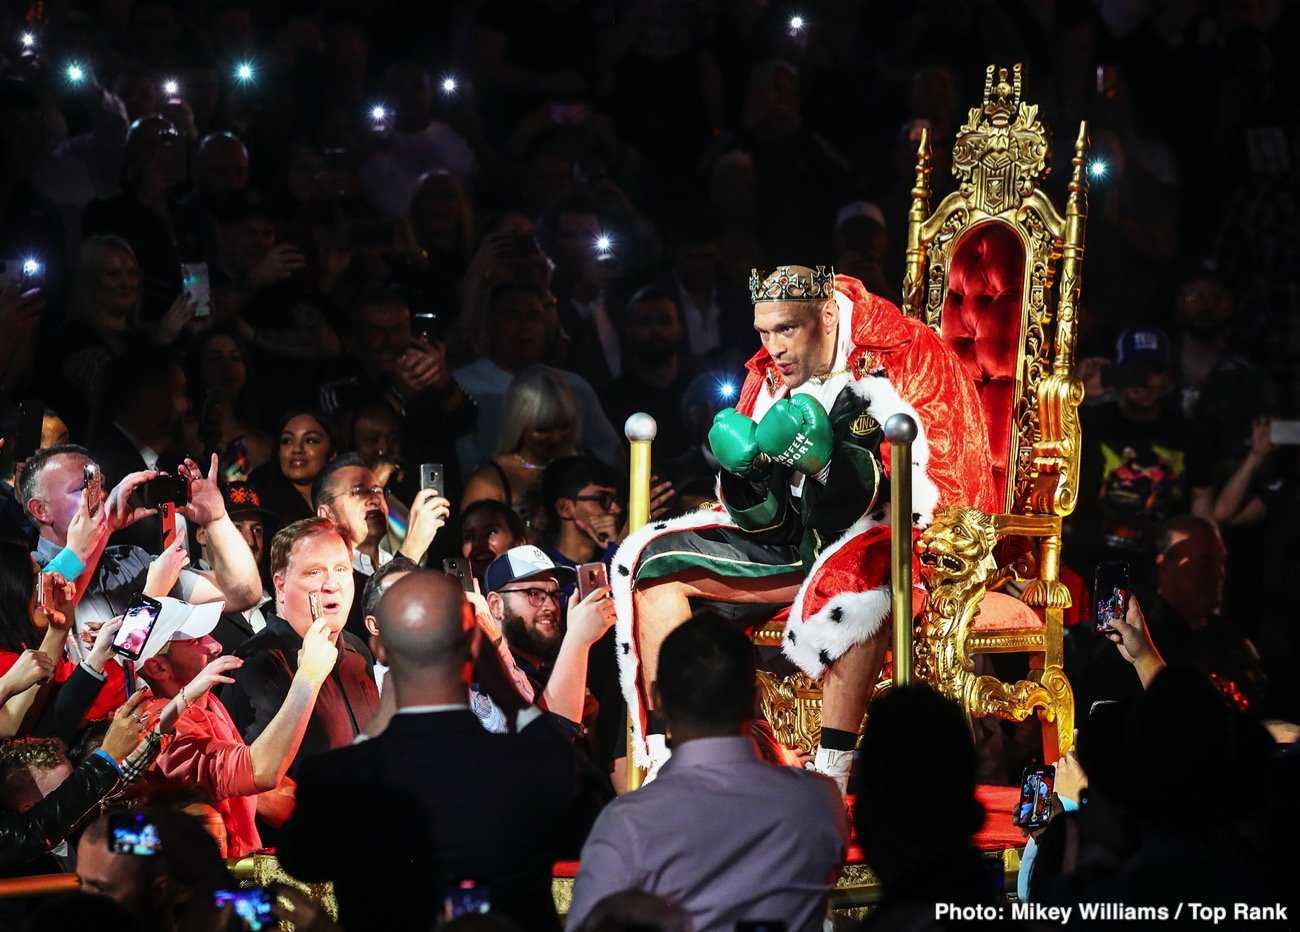 Deontay Wilder, Tyson Fury - Tyson Fury sees this trilogy match with former WBC heavyweight champion Deontay Wilder as the last chance for 'The Bronze Bomber' and he expects him to be ready to give it all he's got.